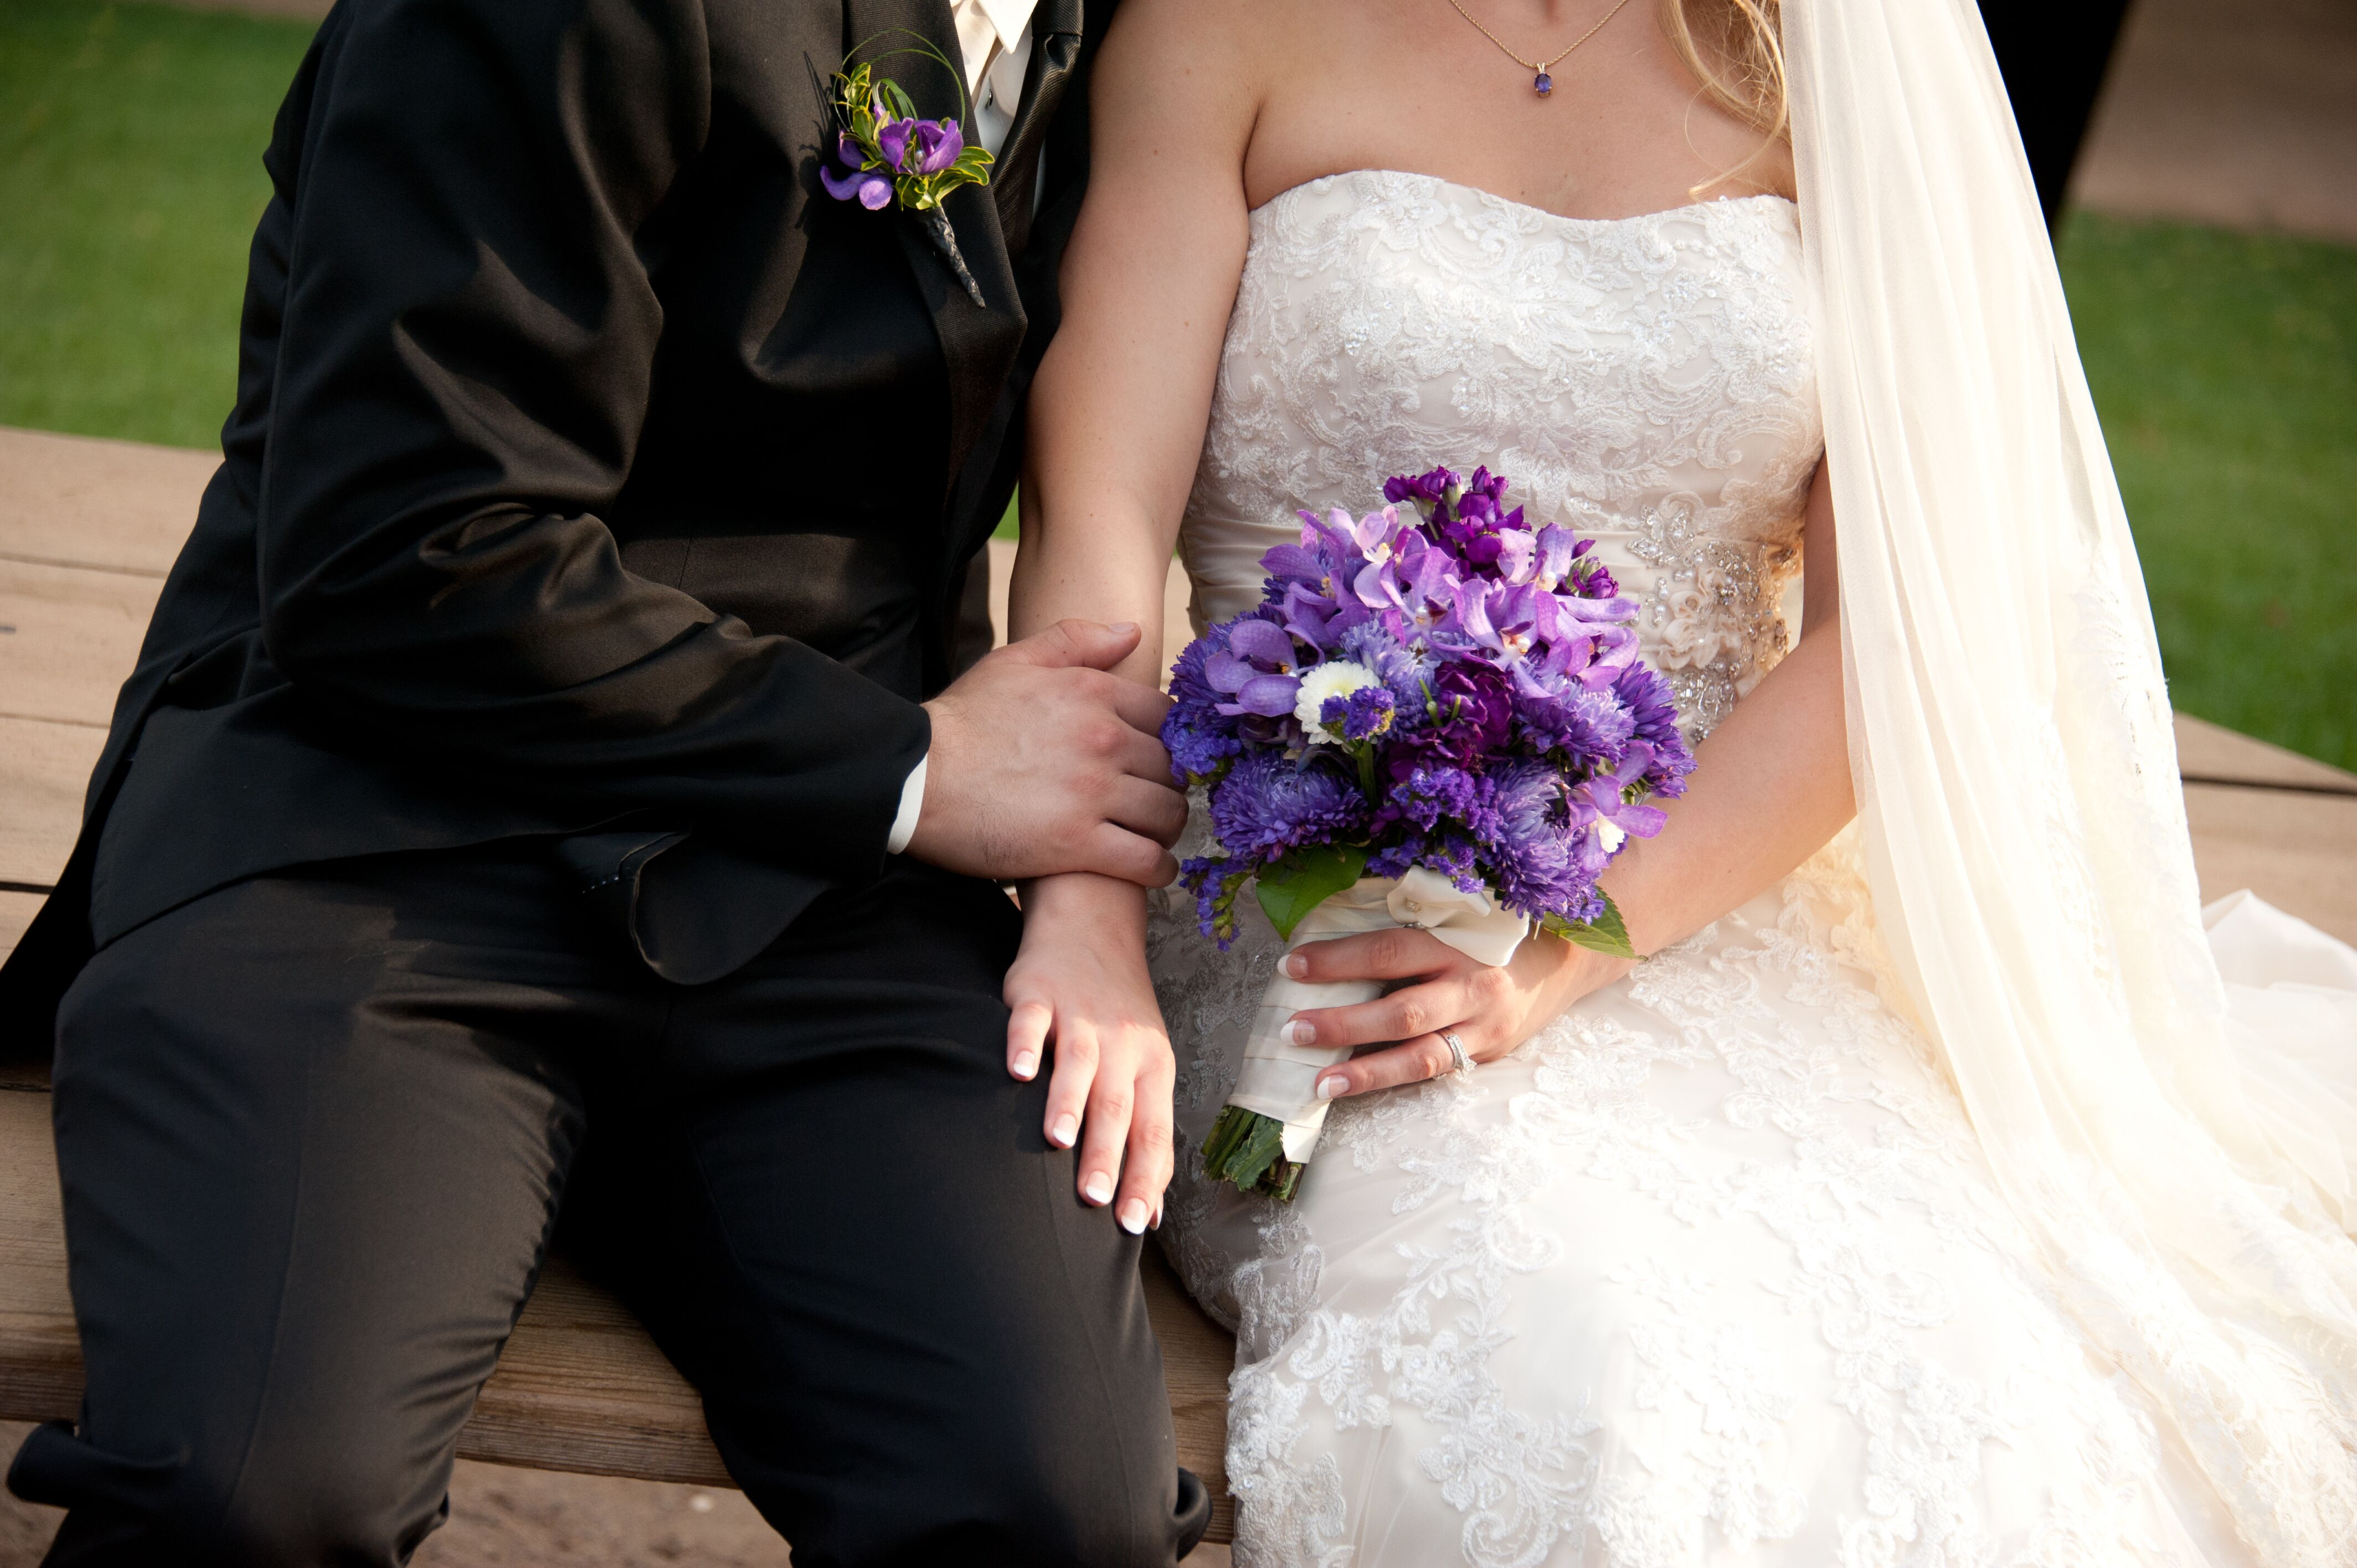 Black Tuxedo And White Lace Wedding Dress With Purple Bouquet